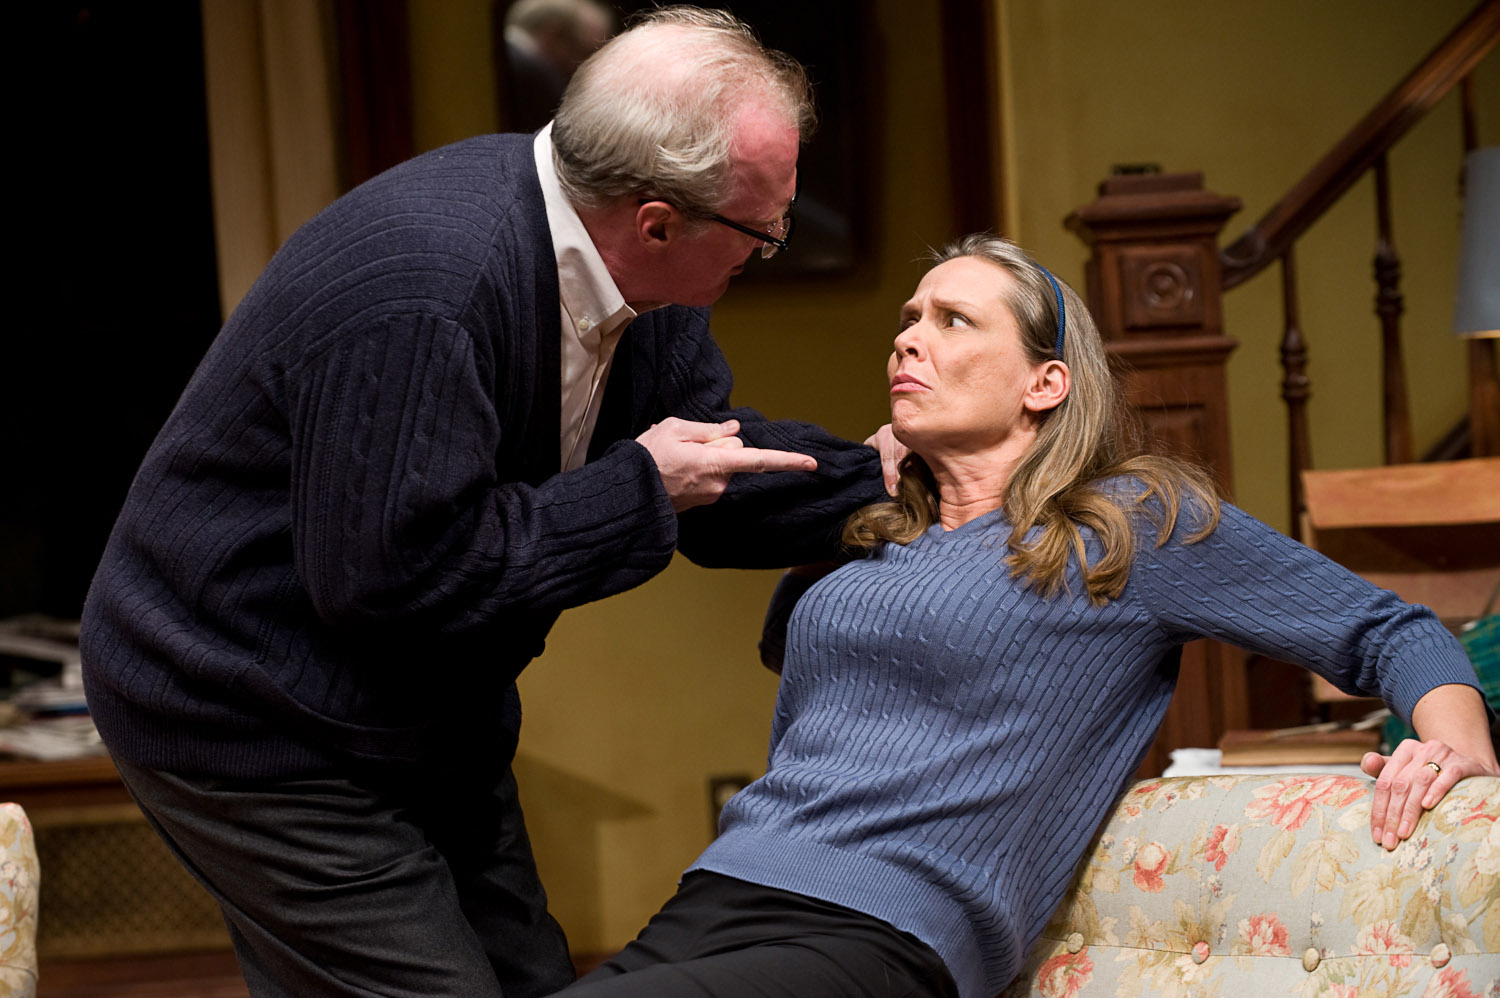 (left to right) Ensemble members Tracy Letts and Amy Morton in Steppenwolf Theatre Company's production of Edward Albee's Who's Afraid of Virginia Woolf? Directed by Pam MacKinnon. Photo by Michael Brosilow.